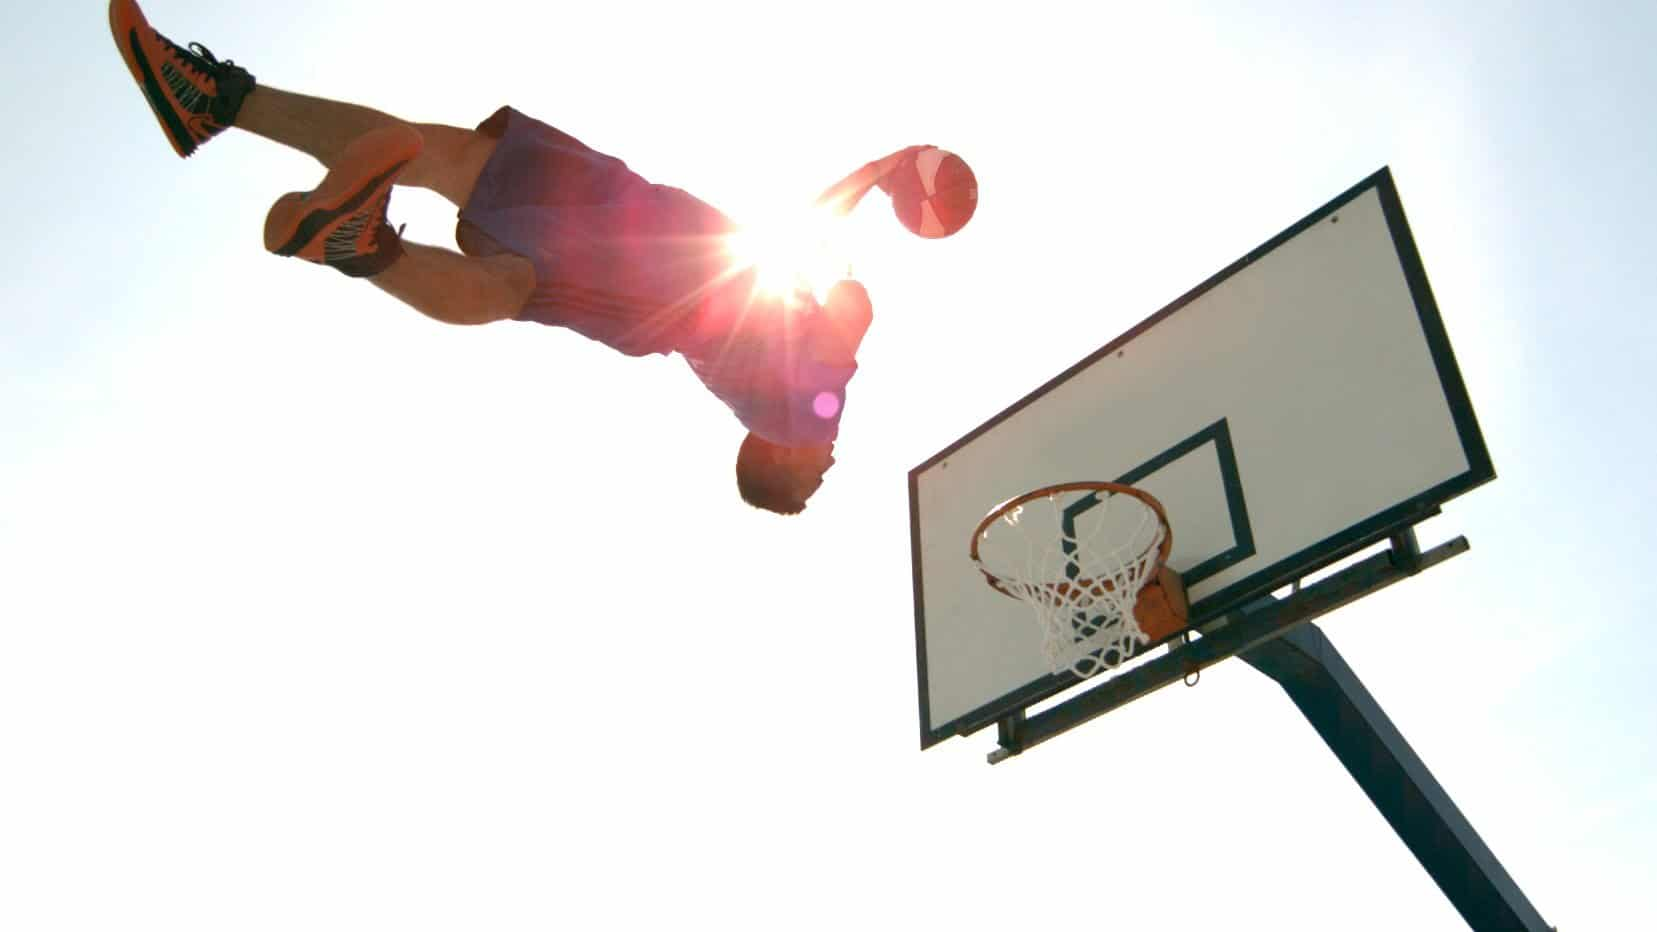 freestyle - melhor basketball dunks freestyle do mundo - Melhor Basketball Dunks Freestyle do mundo